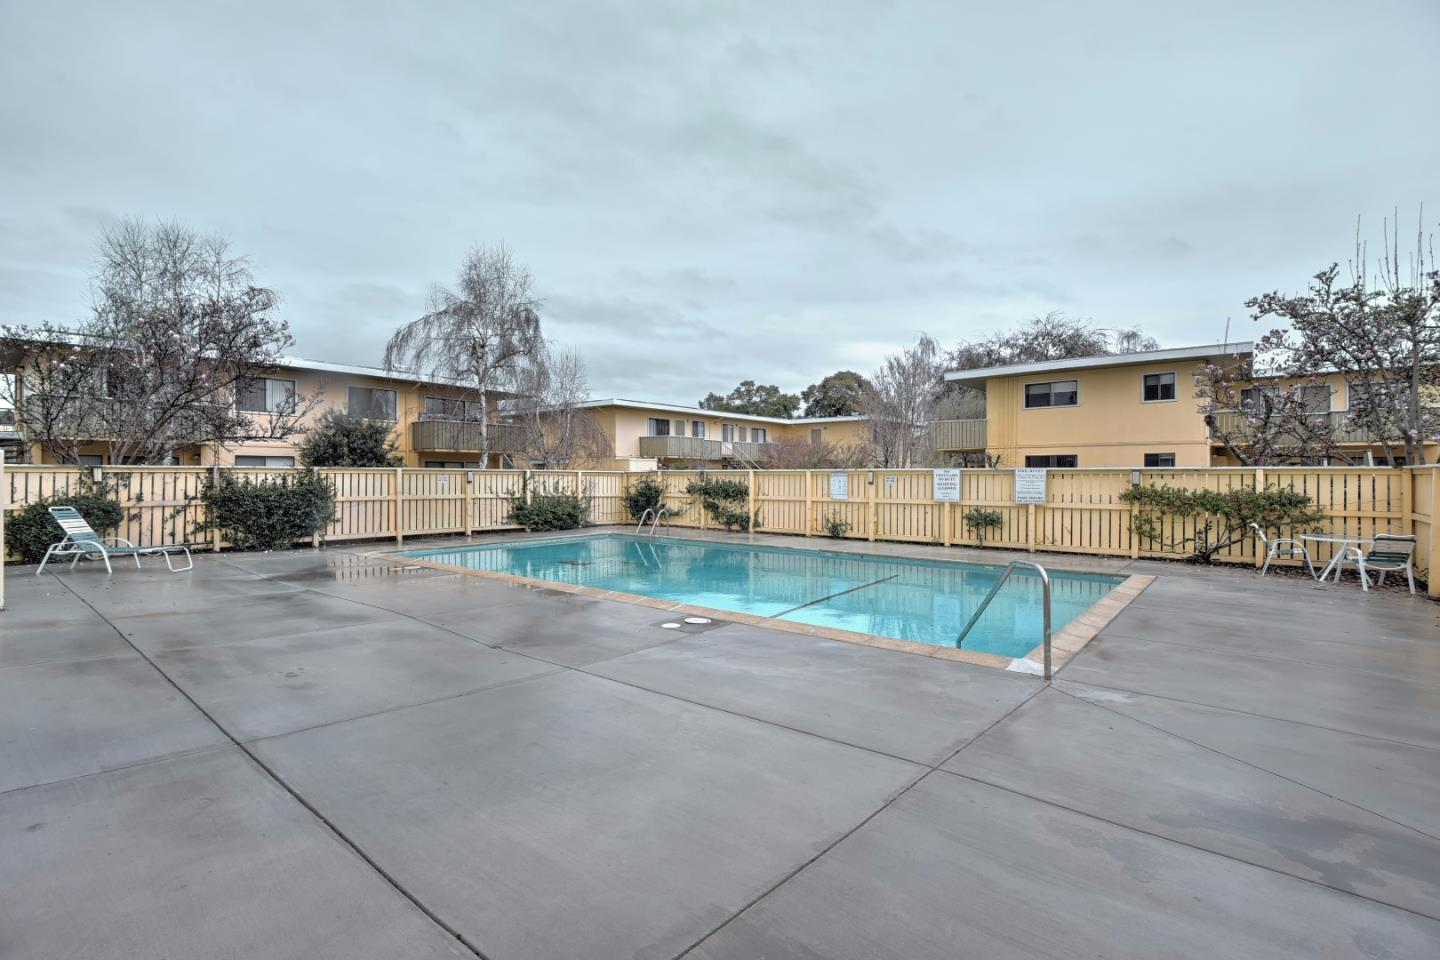 42010 Blacow Road FREMONT CA 94538, Image  6